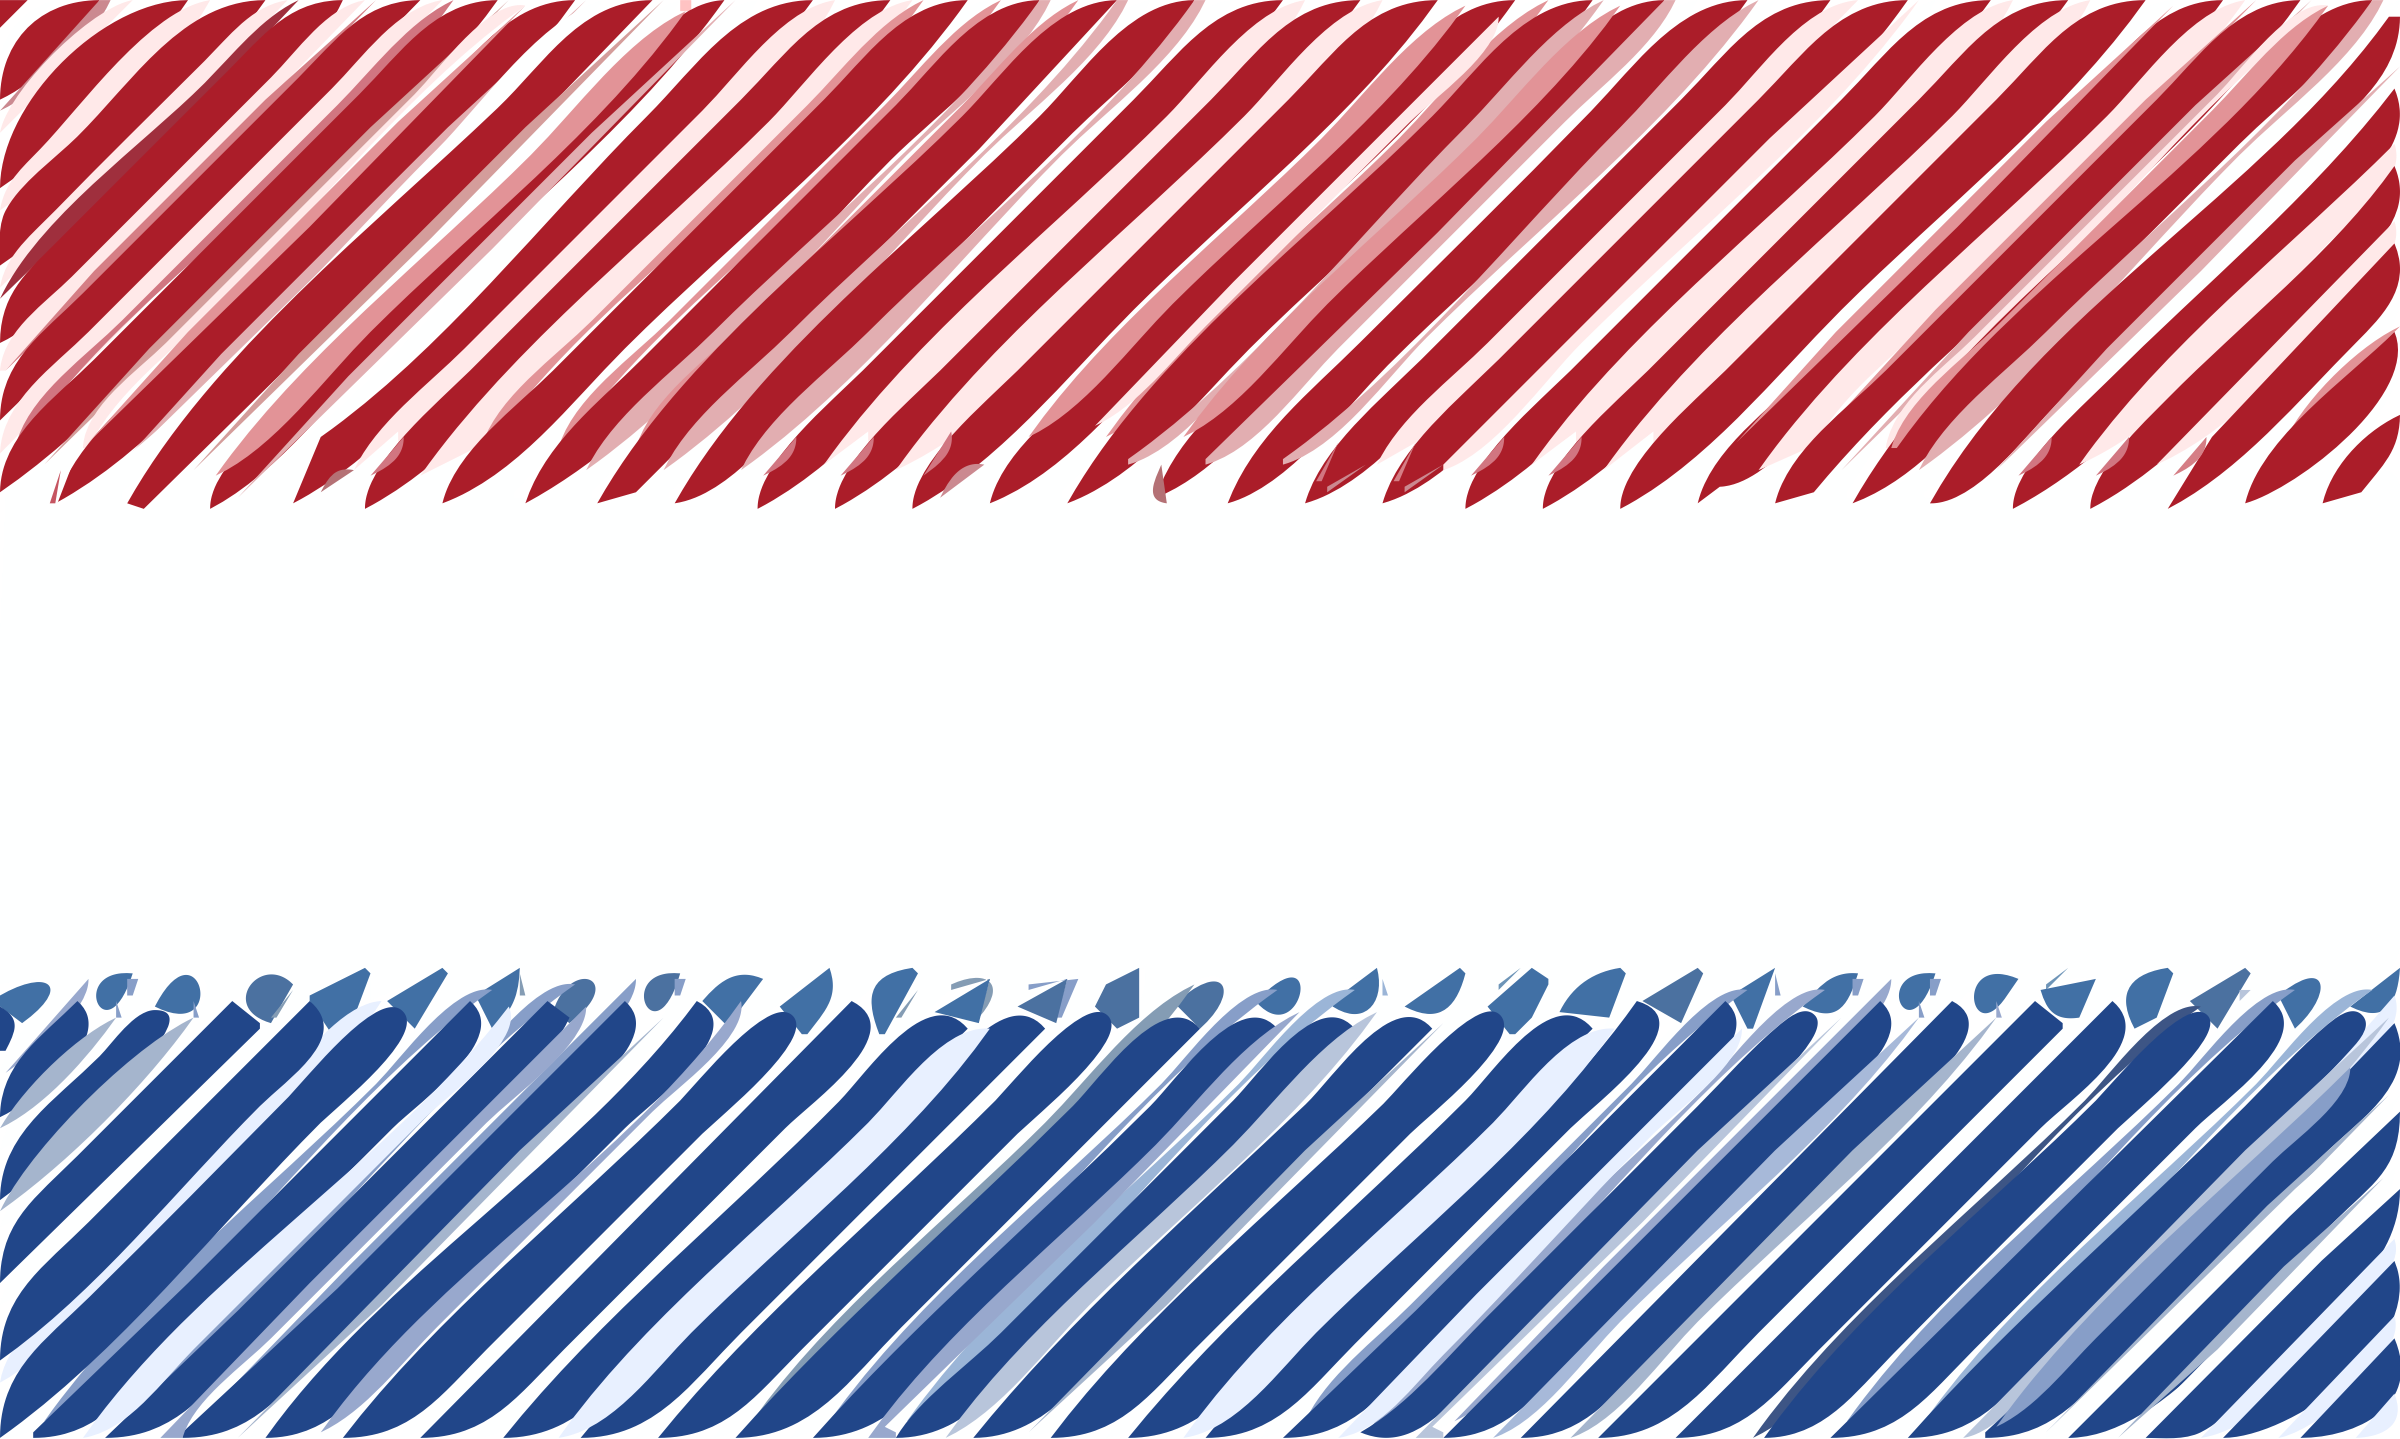 Netherlands flag linear by Joesph